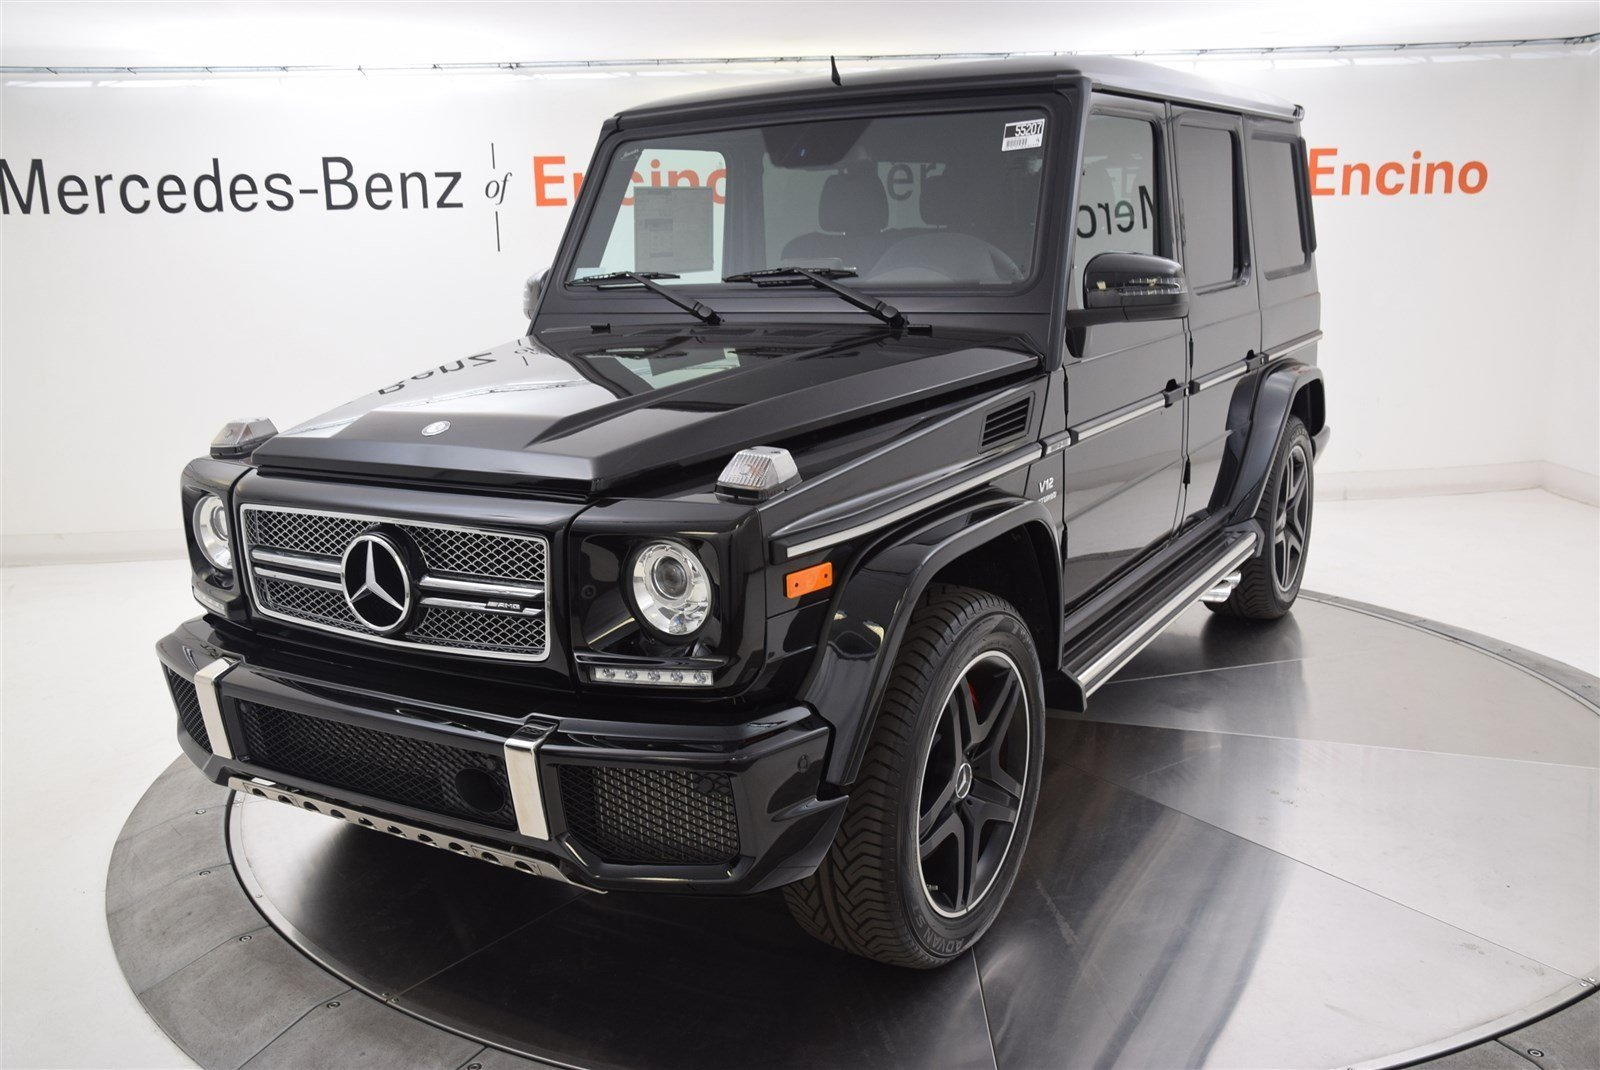 New 2016 mercedes benz g class g 65 amg suv suv in encino for Mercedes benz g class suv price